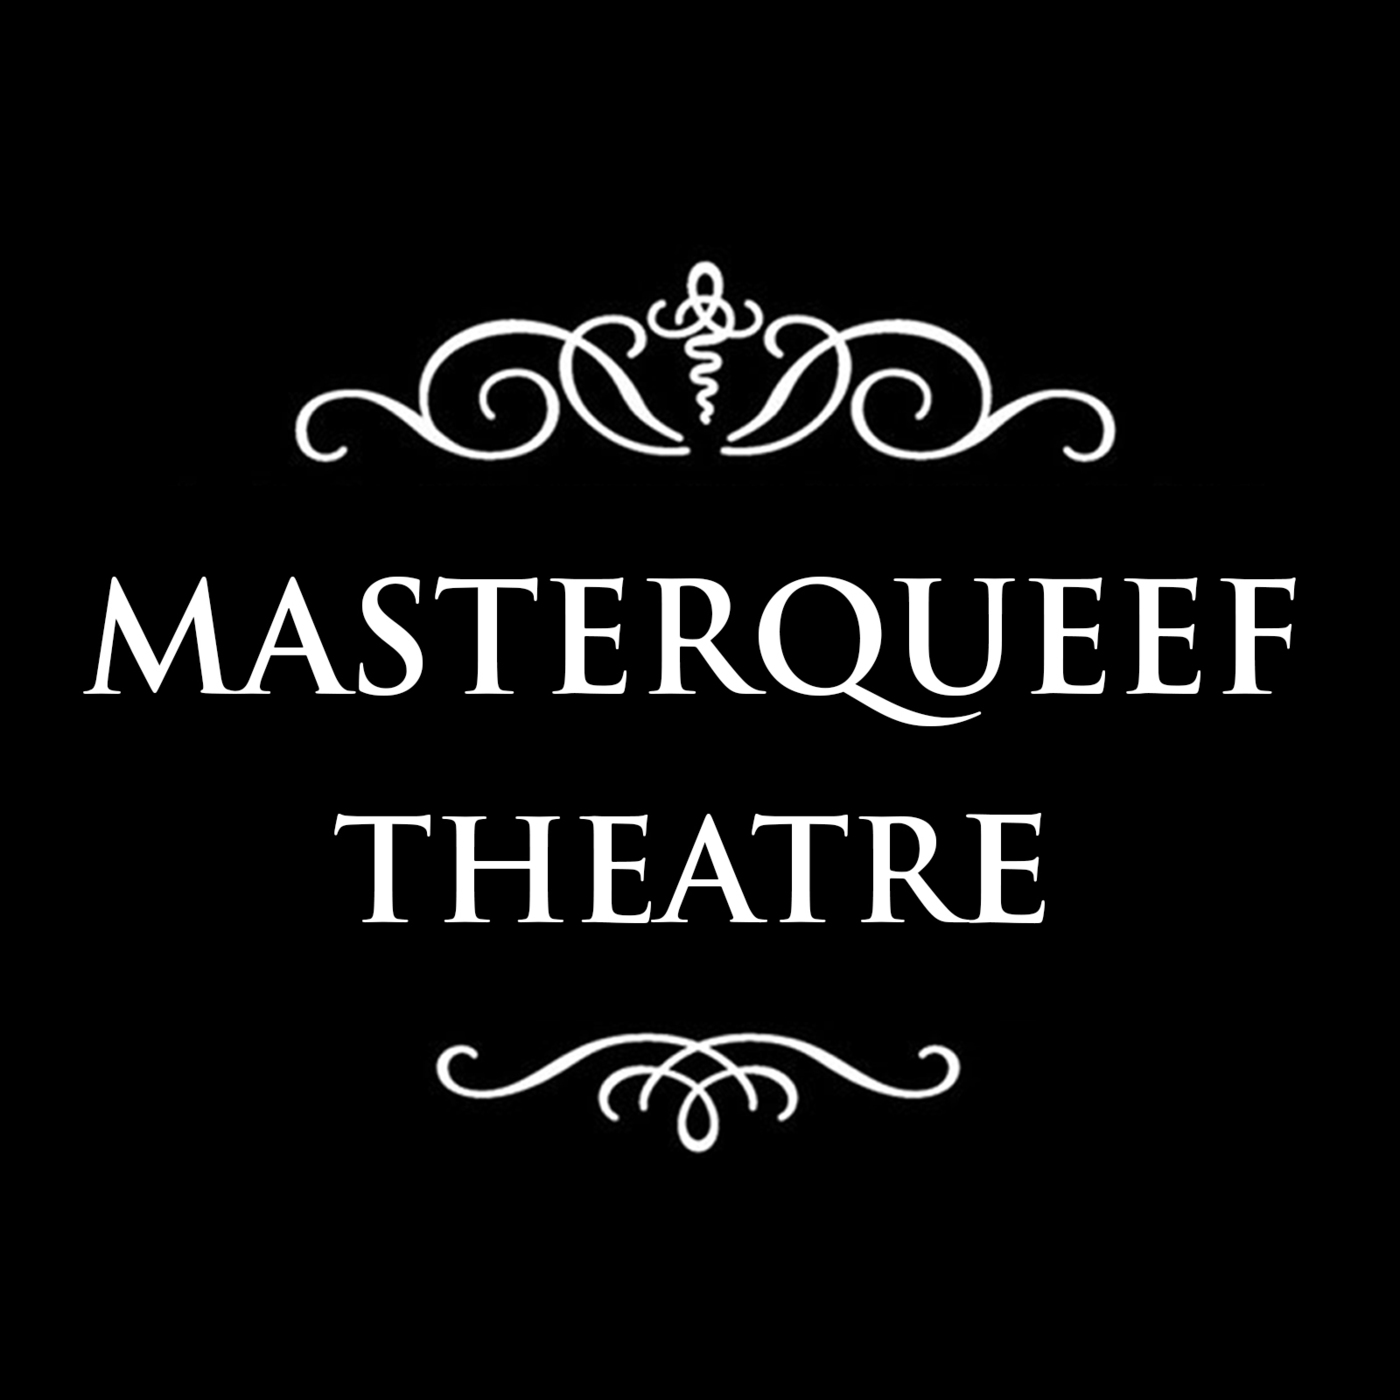 Episode 208: Masterqueef Theatre